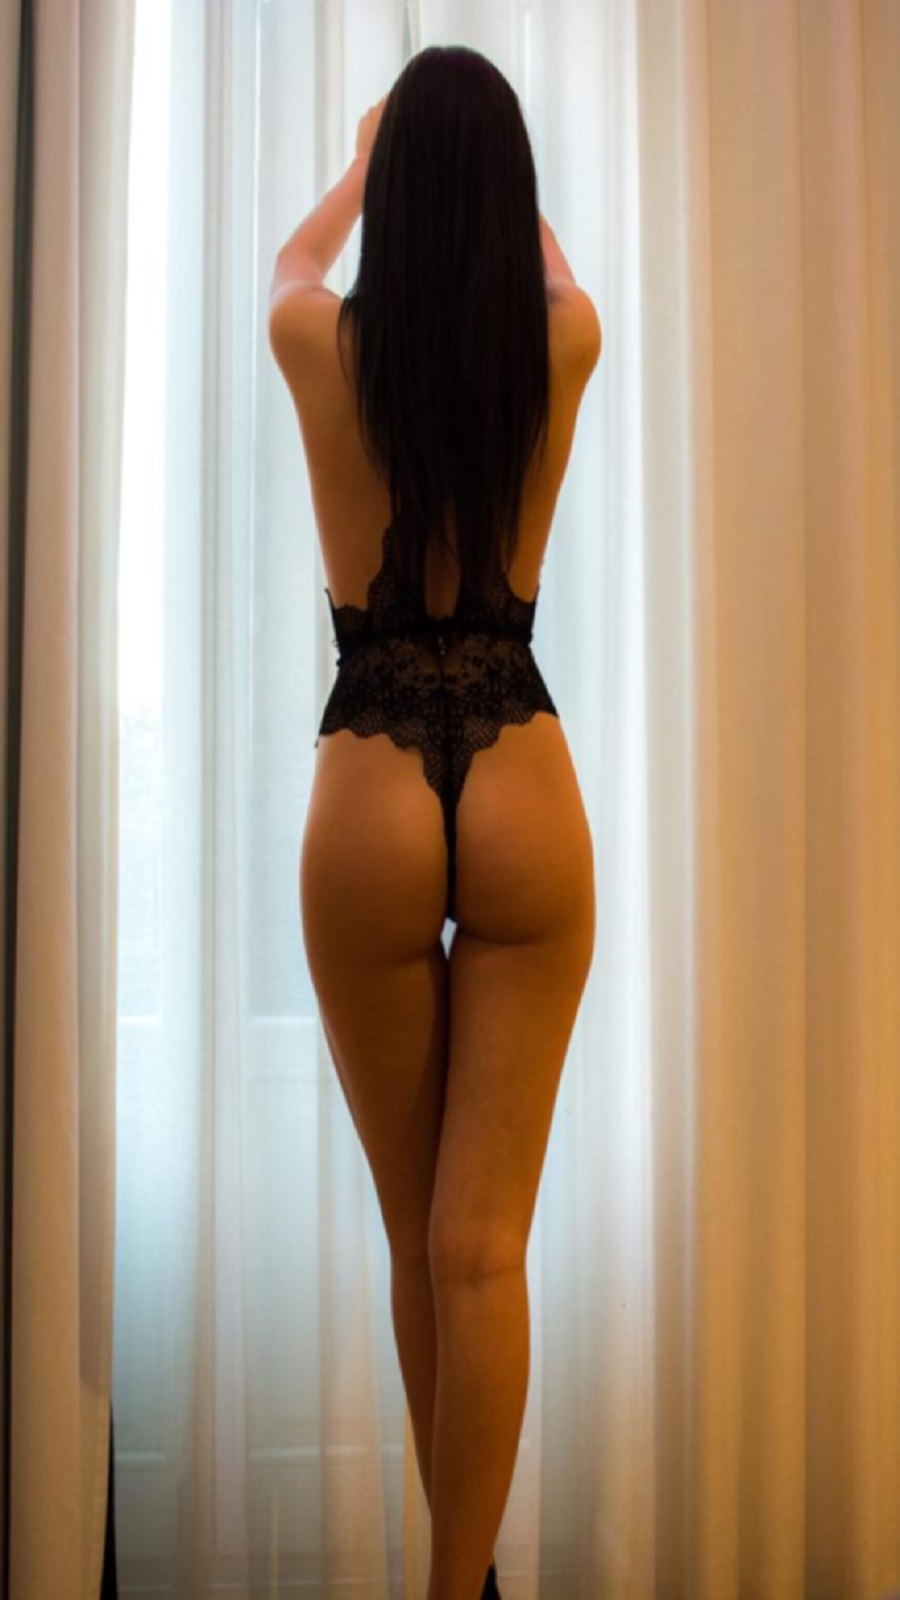 If you are looking for the perfect companion tonight give us a call on 07402724742 to book Adriana for the best night of your life.